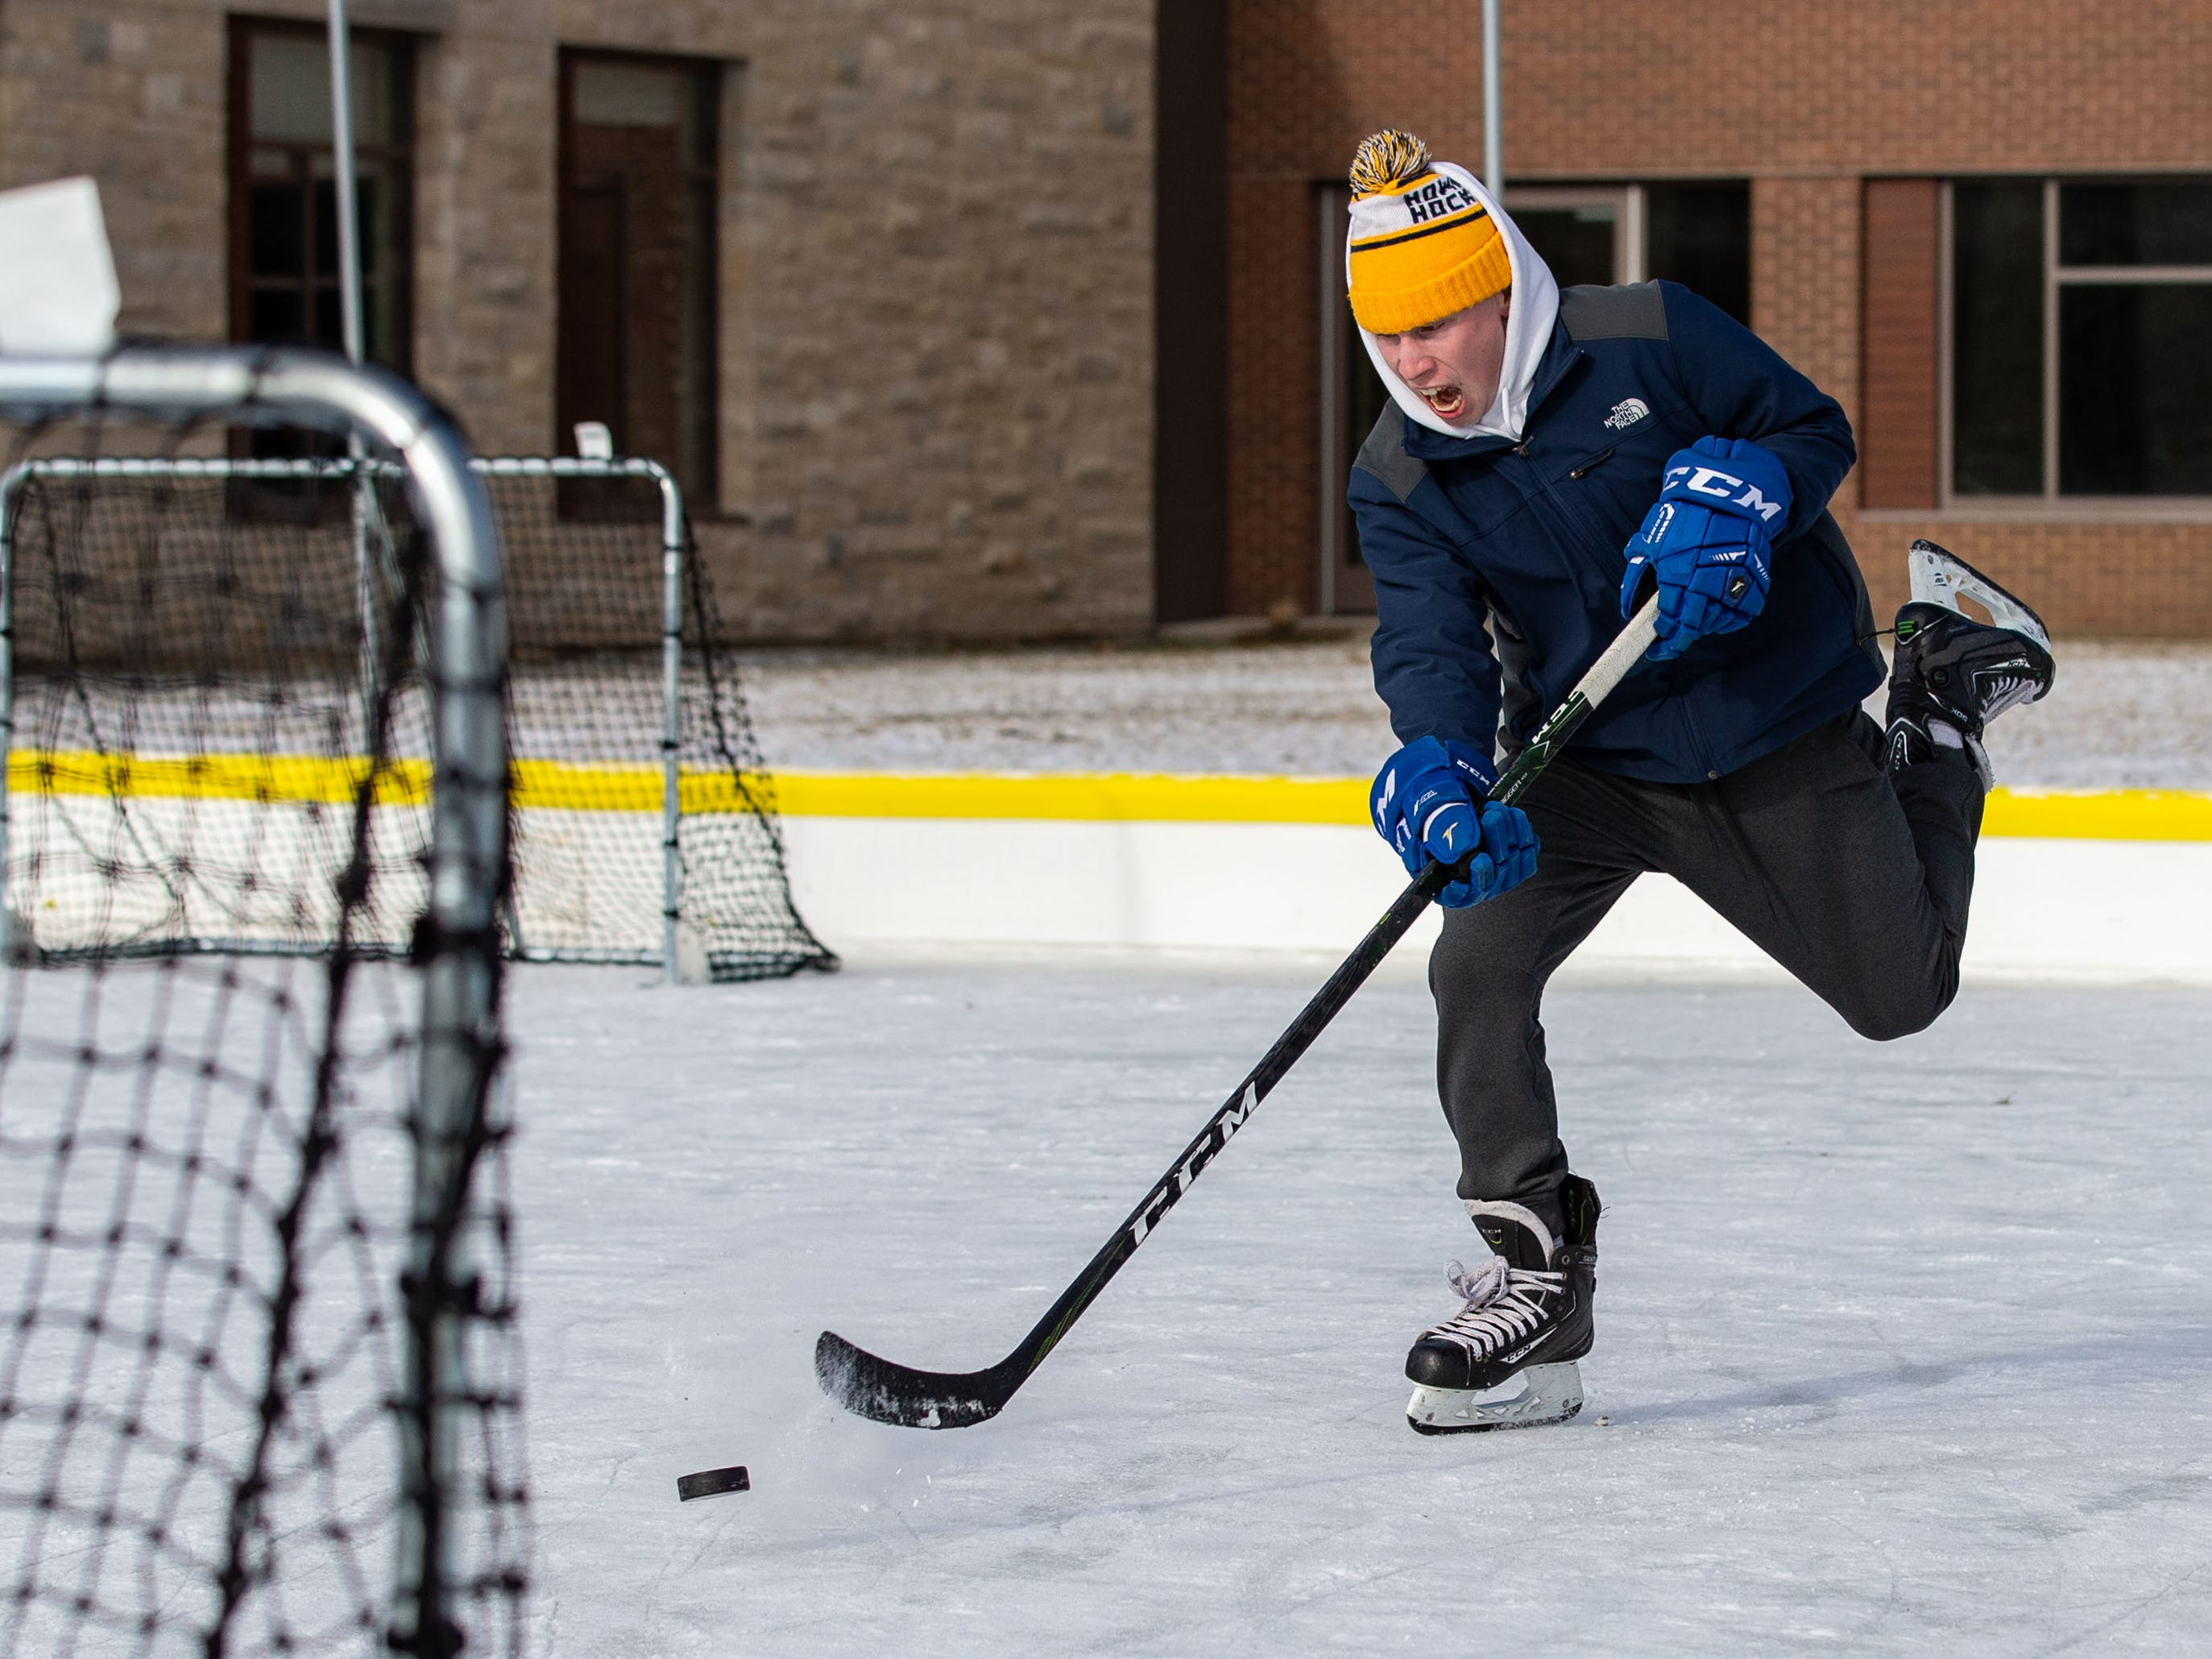 Blake Deede of Sussex practices his slap shot at the Sussex Civic Center ice rink on Sunday, Dec. 30, 2018. The rink is open seven days a week as weather permits. For hours and info visit villagesussex.org.